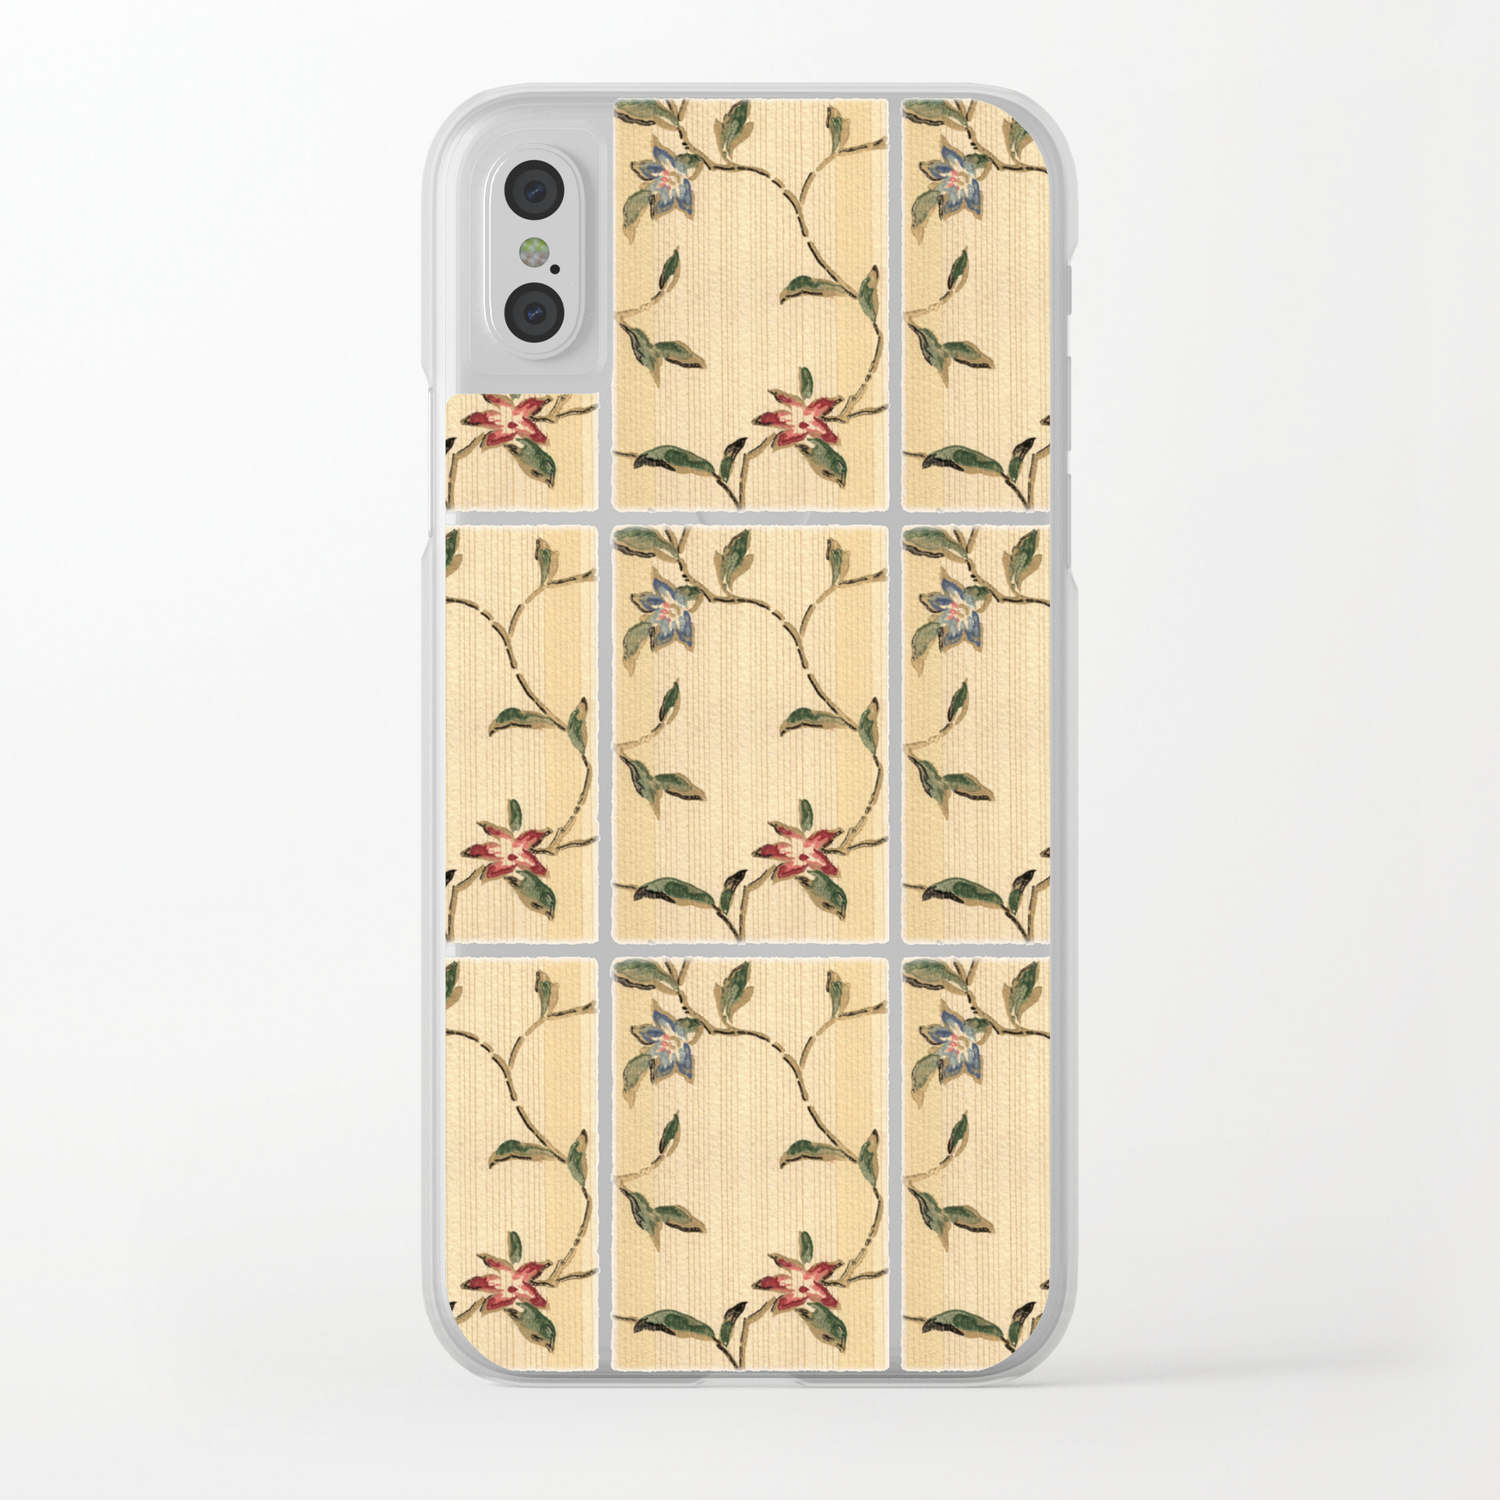 Vintage Floral Wallpaper Design Clear Iphone Case By Kmcdesigns